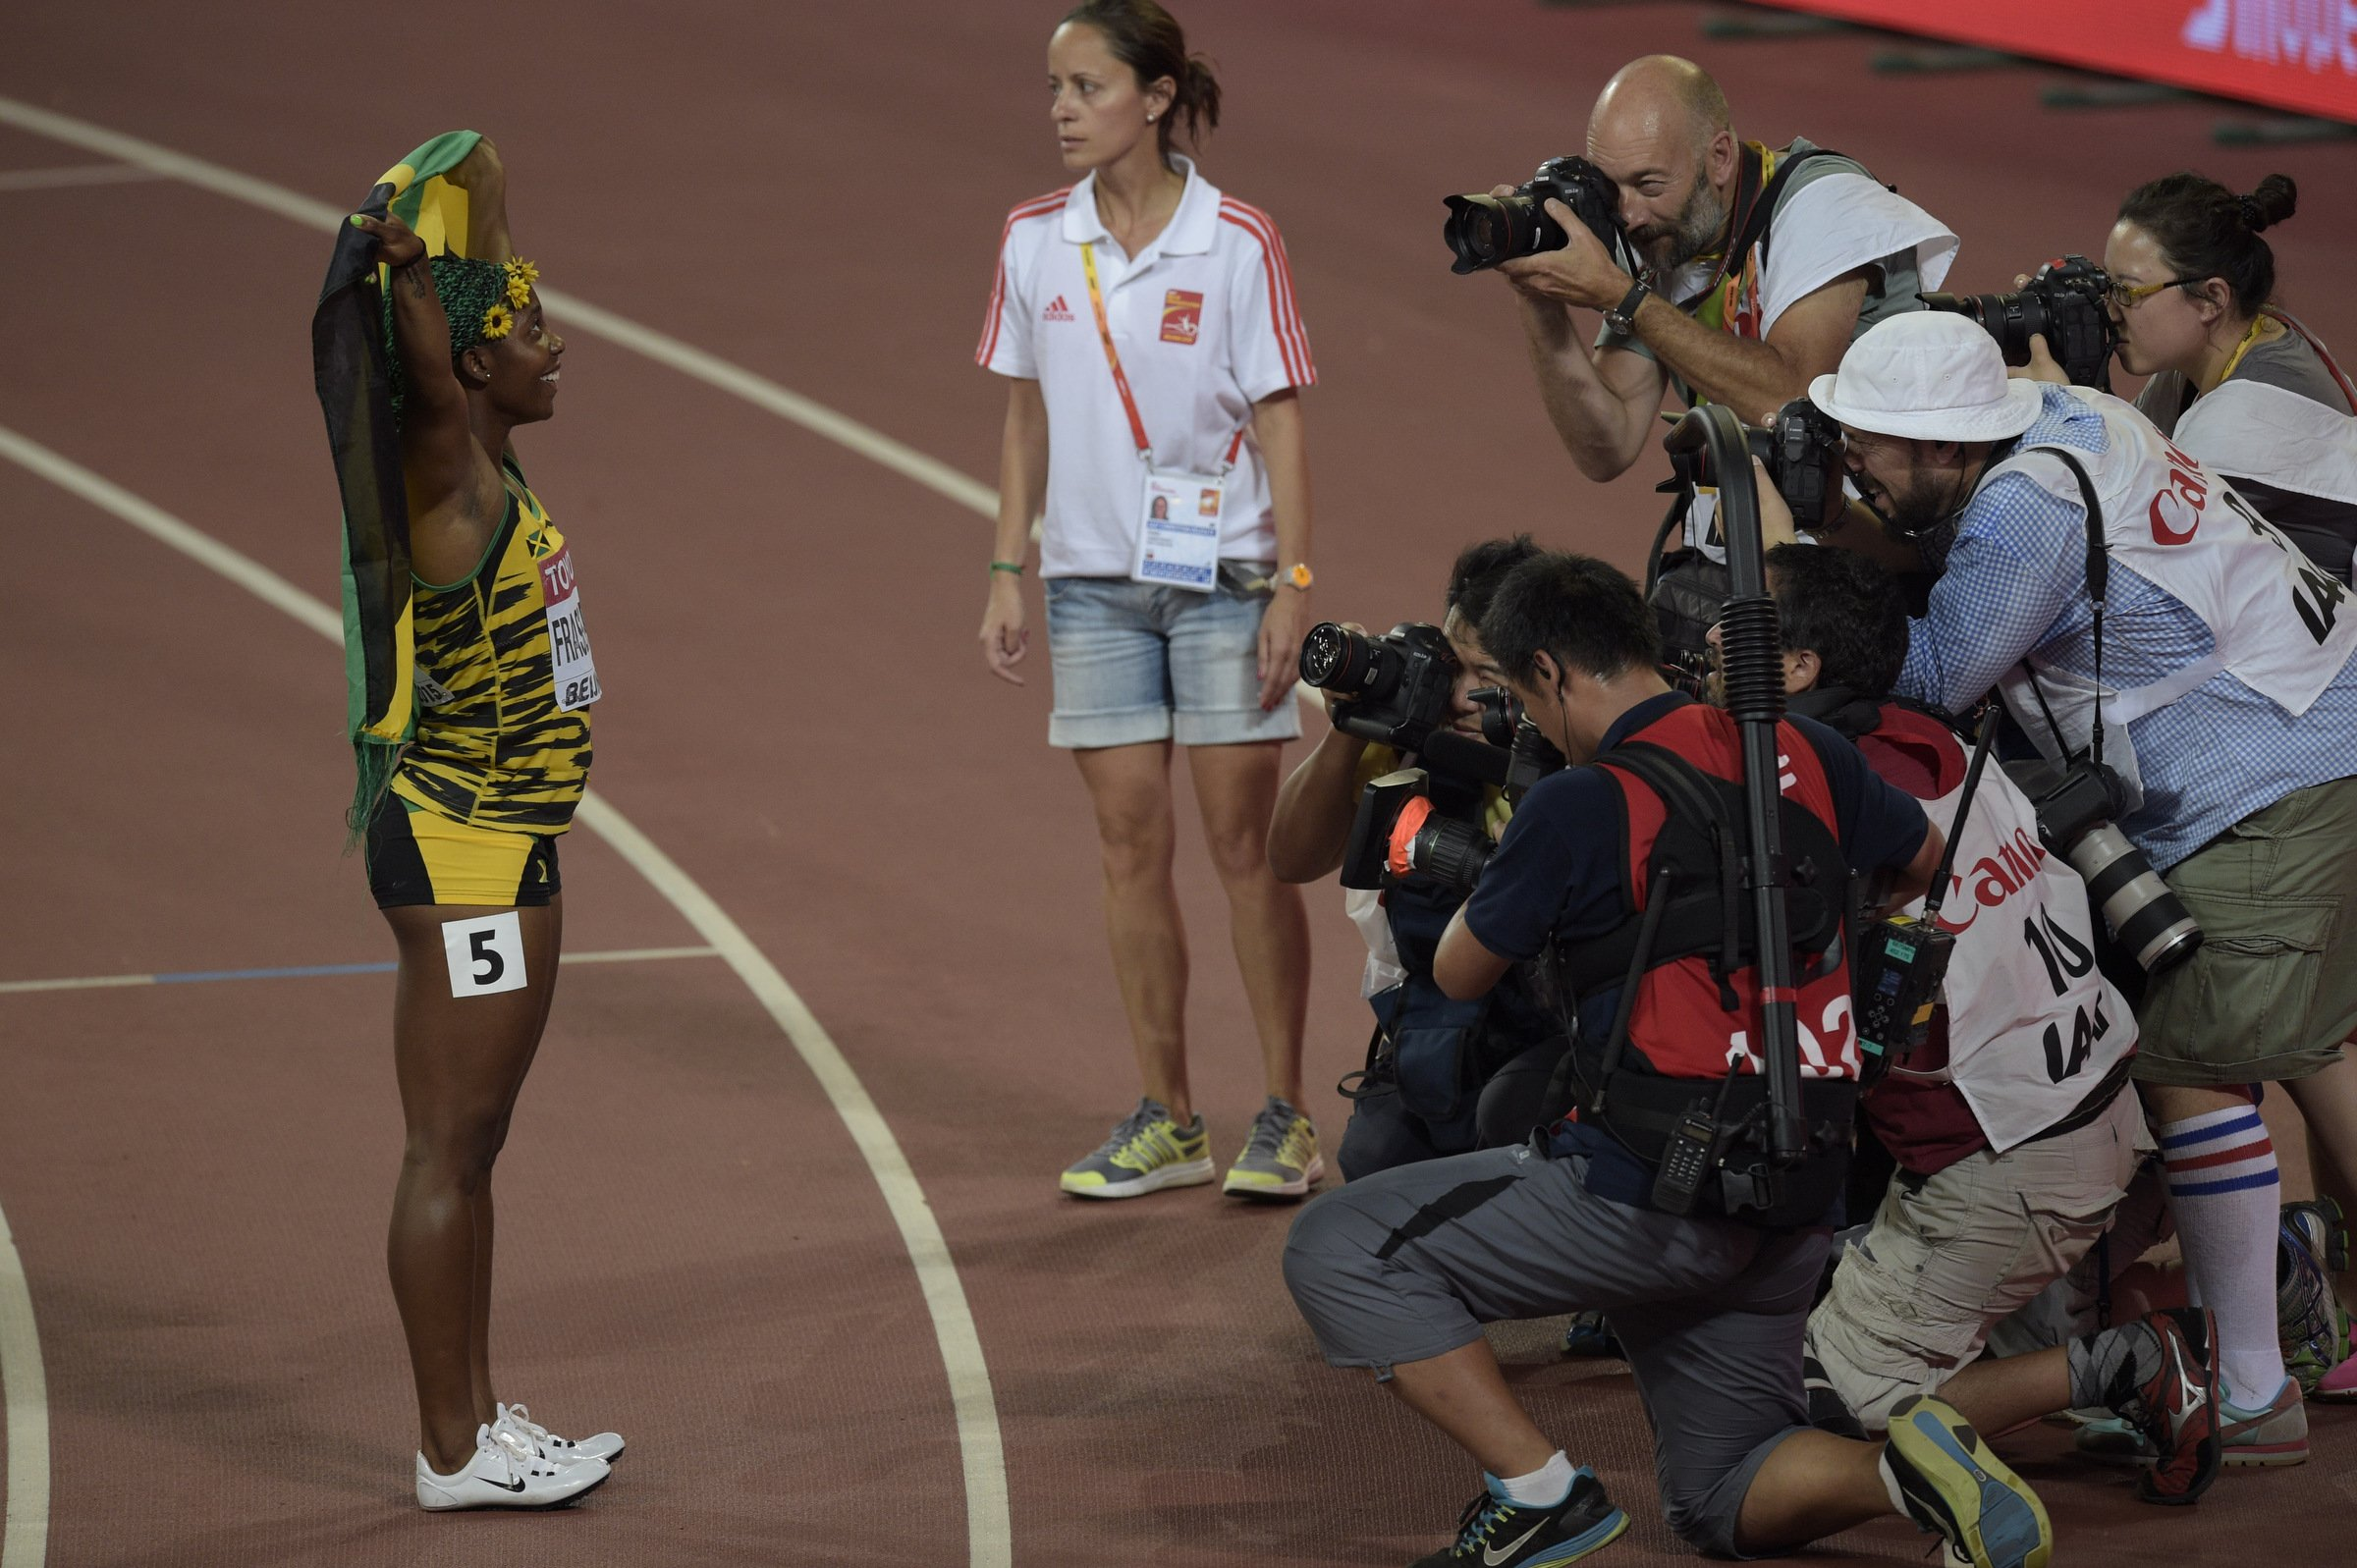 Shelly-Ann Fraser-Pryce (JAM) celebrates her third world championship gold medal in the 100-meters.